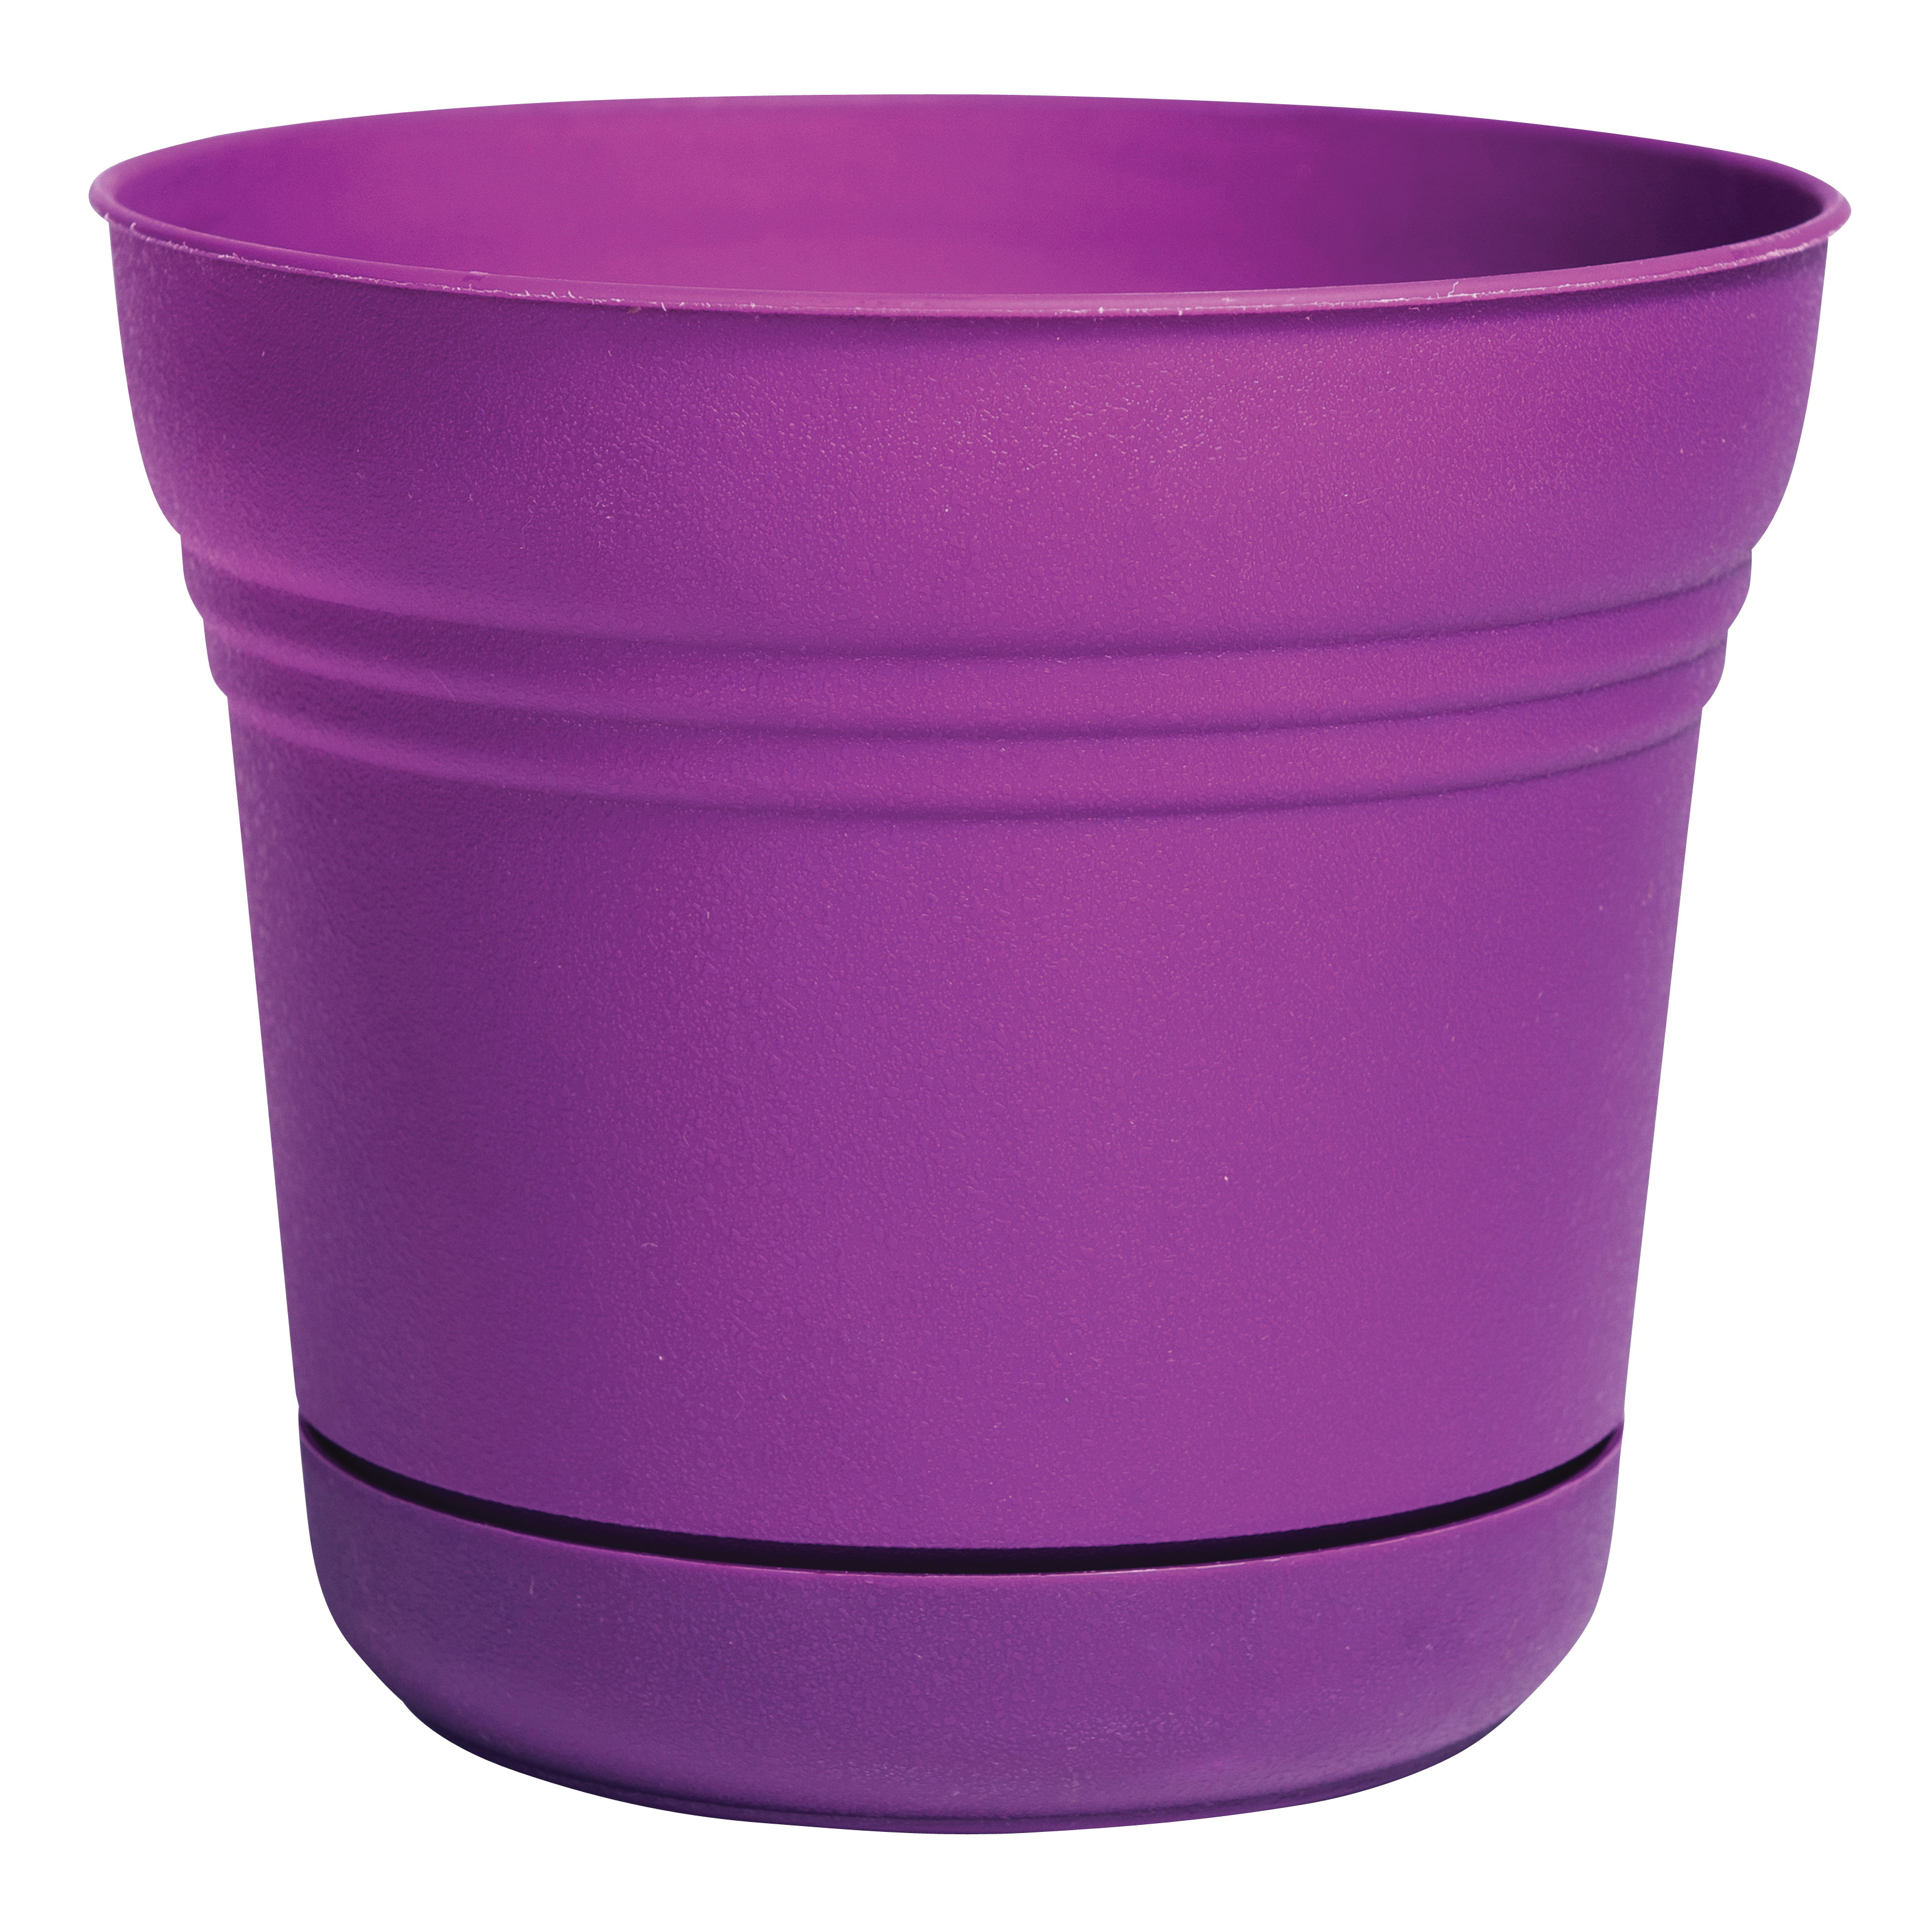 Picture of Bloem SP1029 Saturn Planter, 9.8 in W, Bell, Plastic, Passion Fruit, Matte